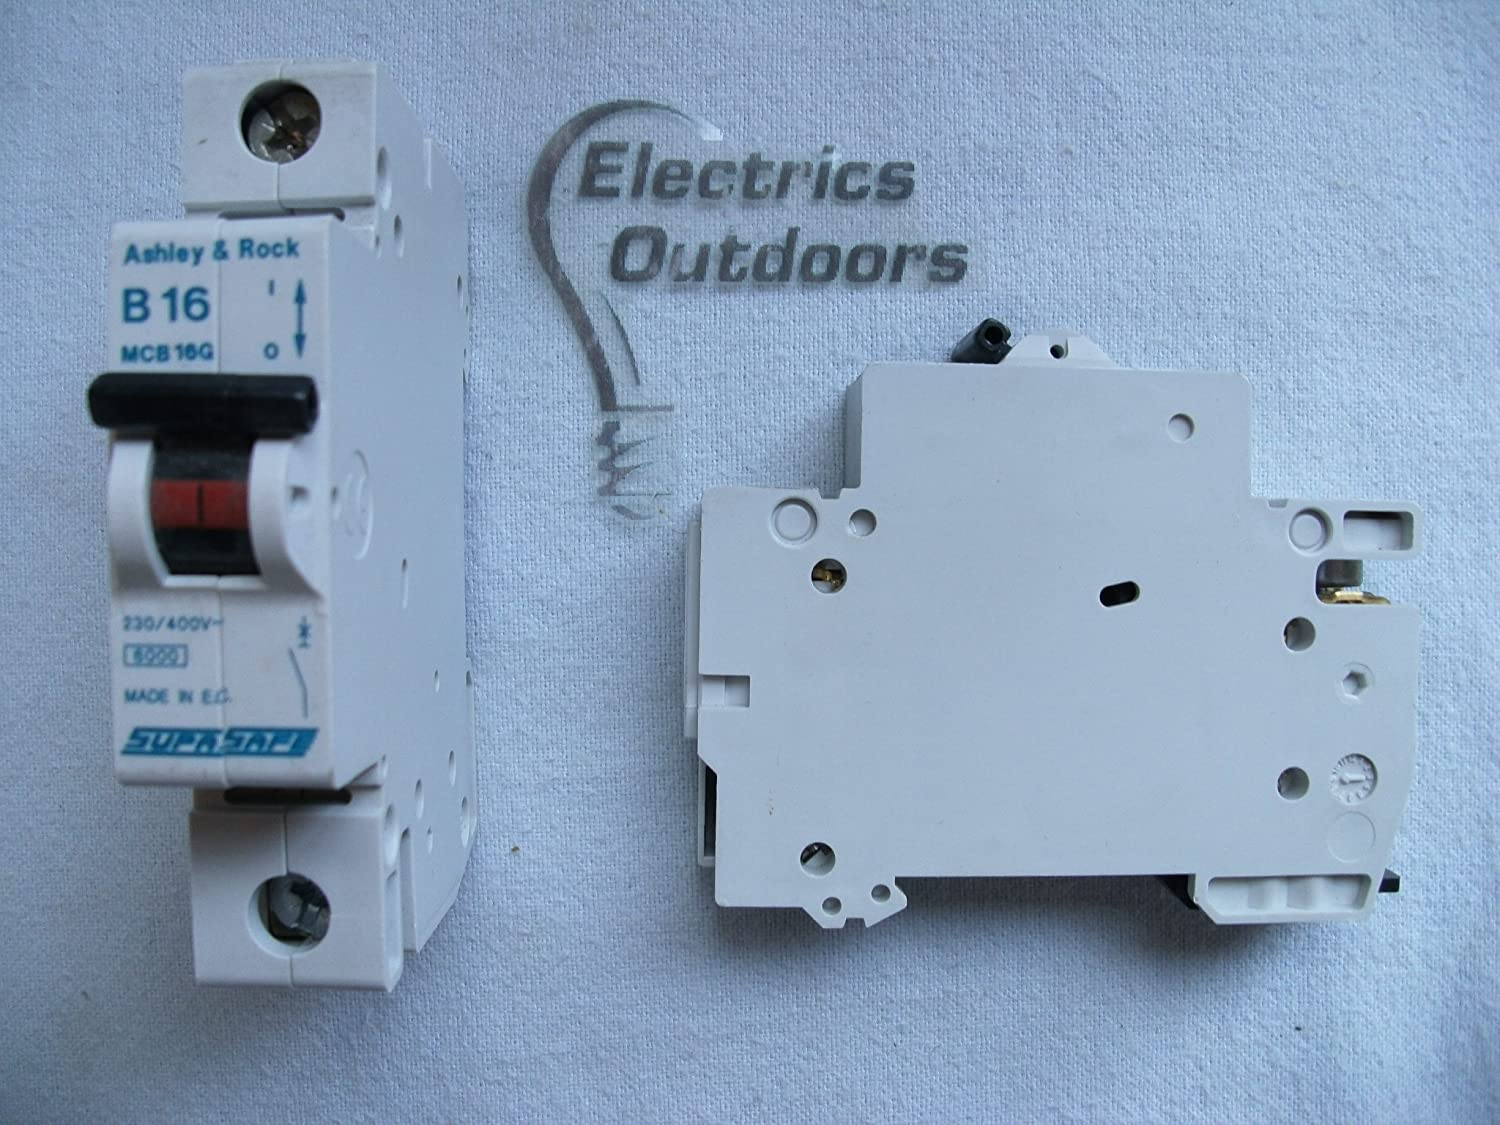 ASHLEY & ROCK 16 AMP TYPE B 6 kA MCB CIRCUIT BREAKER SUPASAFE MCB16G BS EN 61009